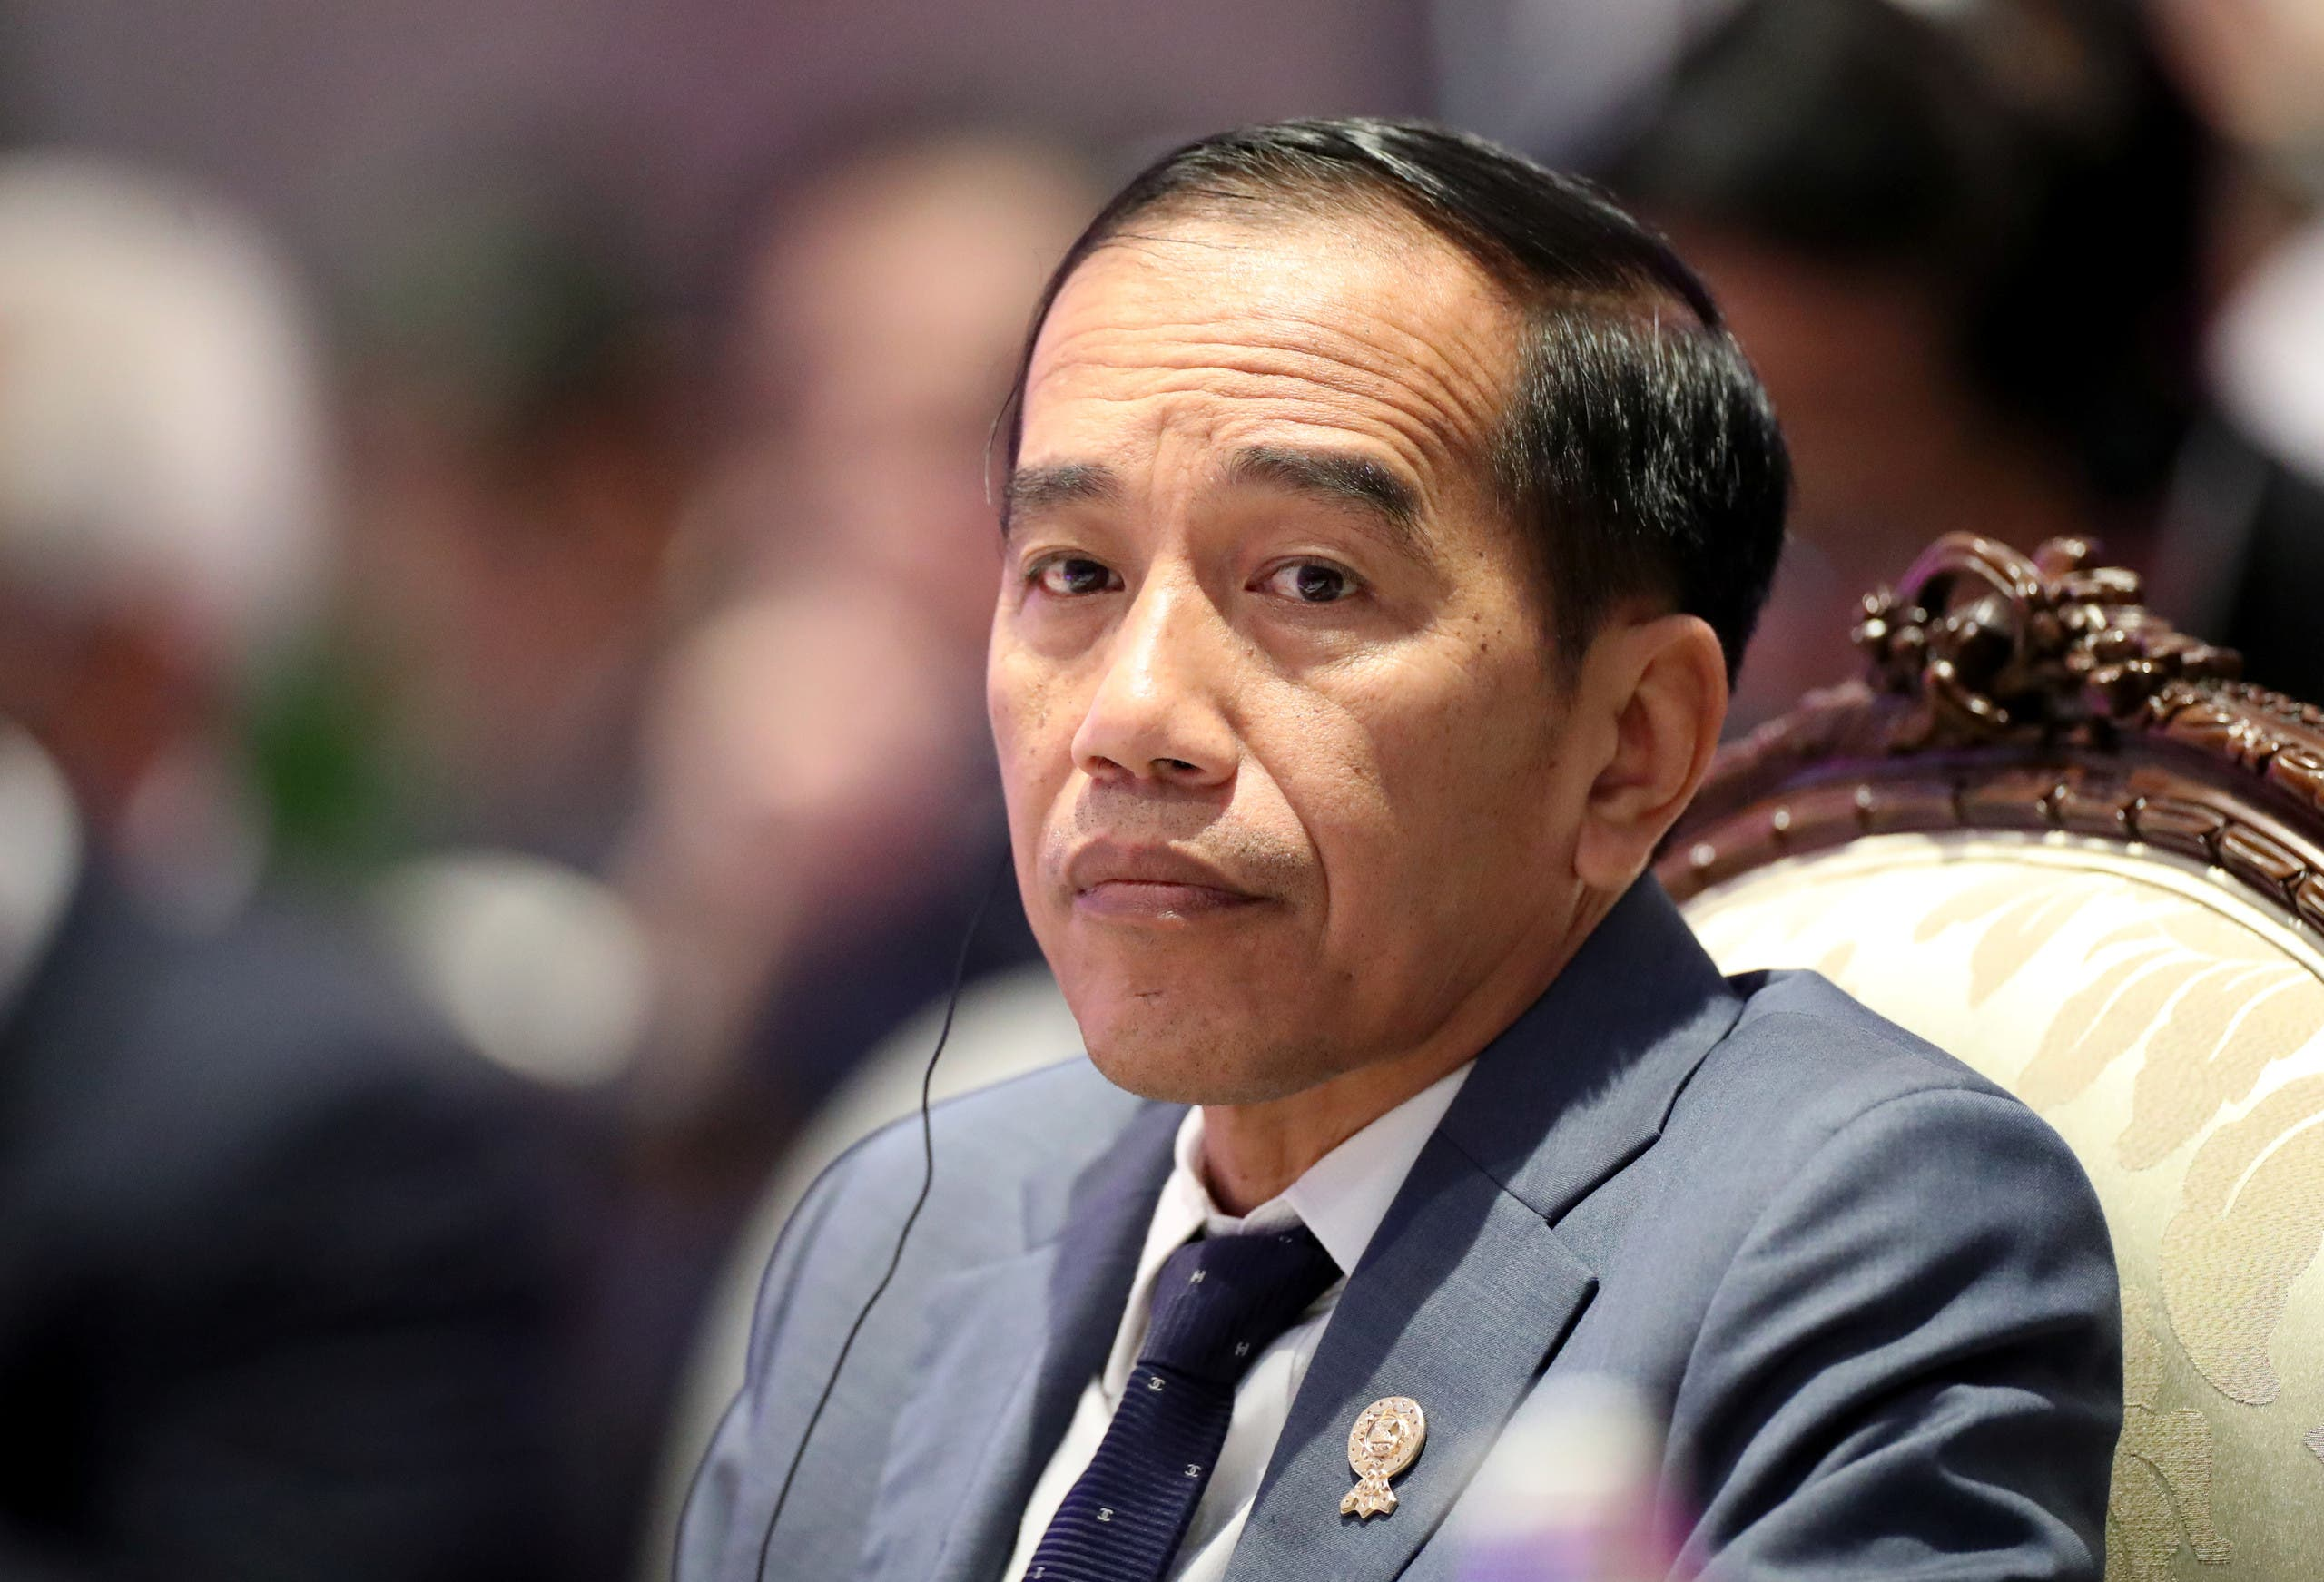 Indonesia's President Joko Widodo attends an ASEAN leaders summit with United Nations Secretary-General Antonio Guterres, in Bangkok, Thailand. (File photo: Reuters)